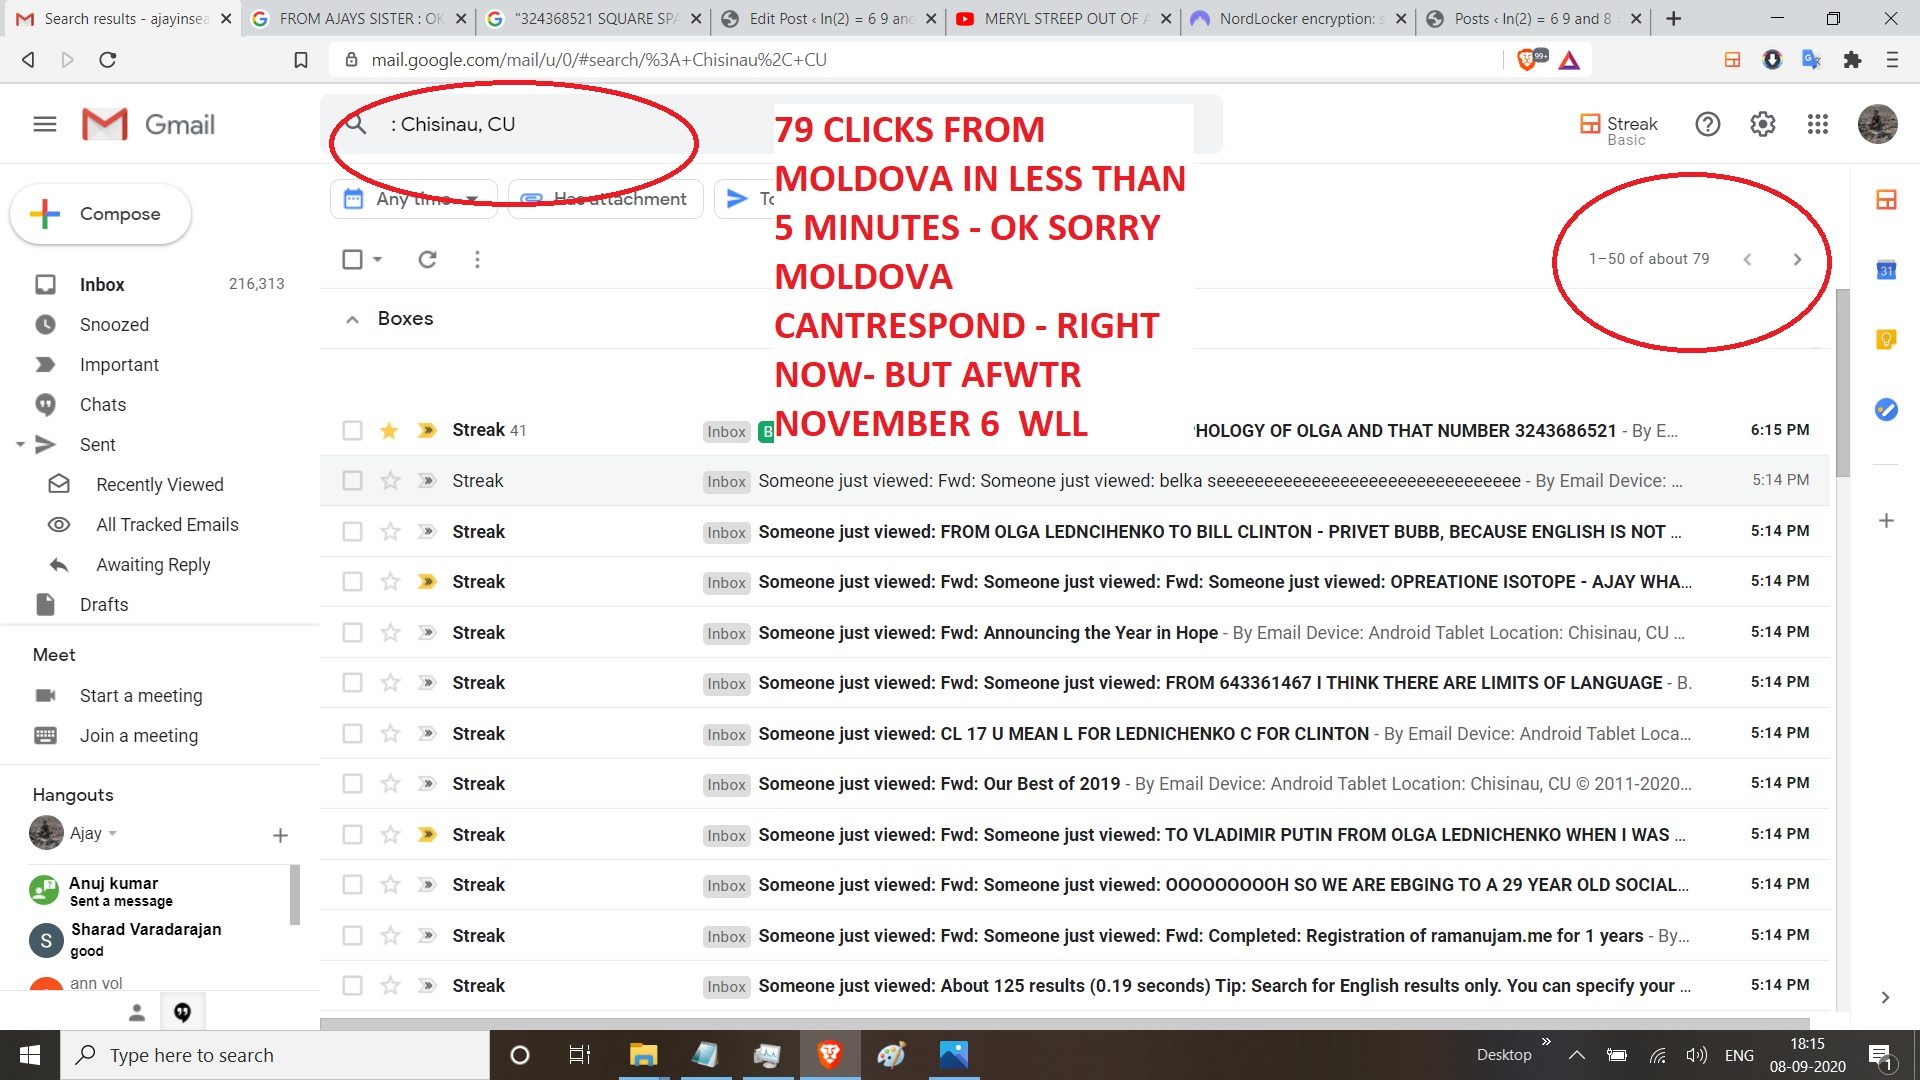 79 CLICKS FROM MOLDOVA IN LESS THAN 5 MINUTES - OK SORRY MOLDOVA CANTRESPOND - RIGHT NOW- BUT AFWTR NOVEMBER 6 WLL